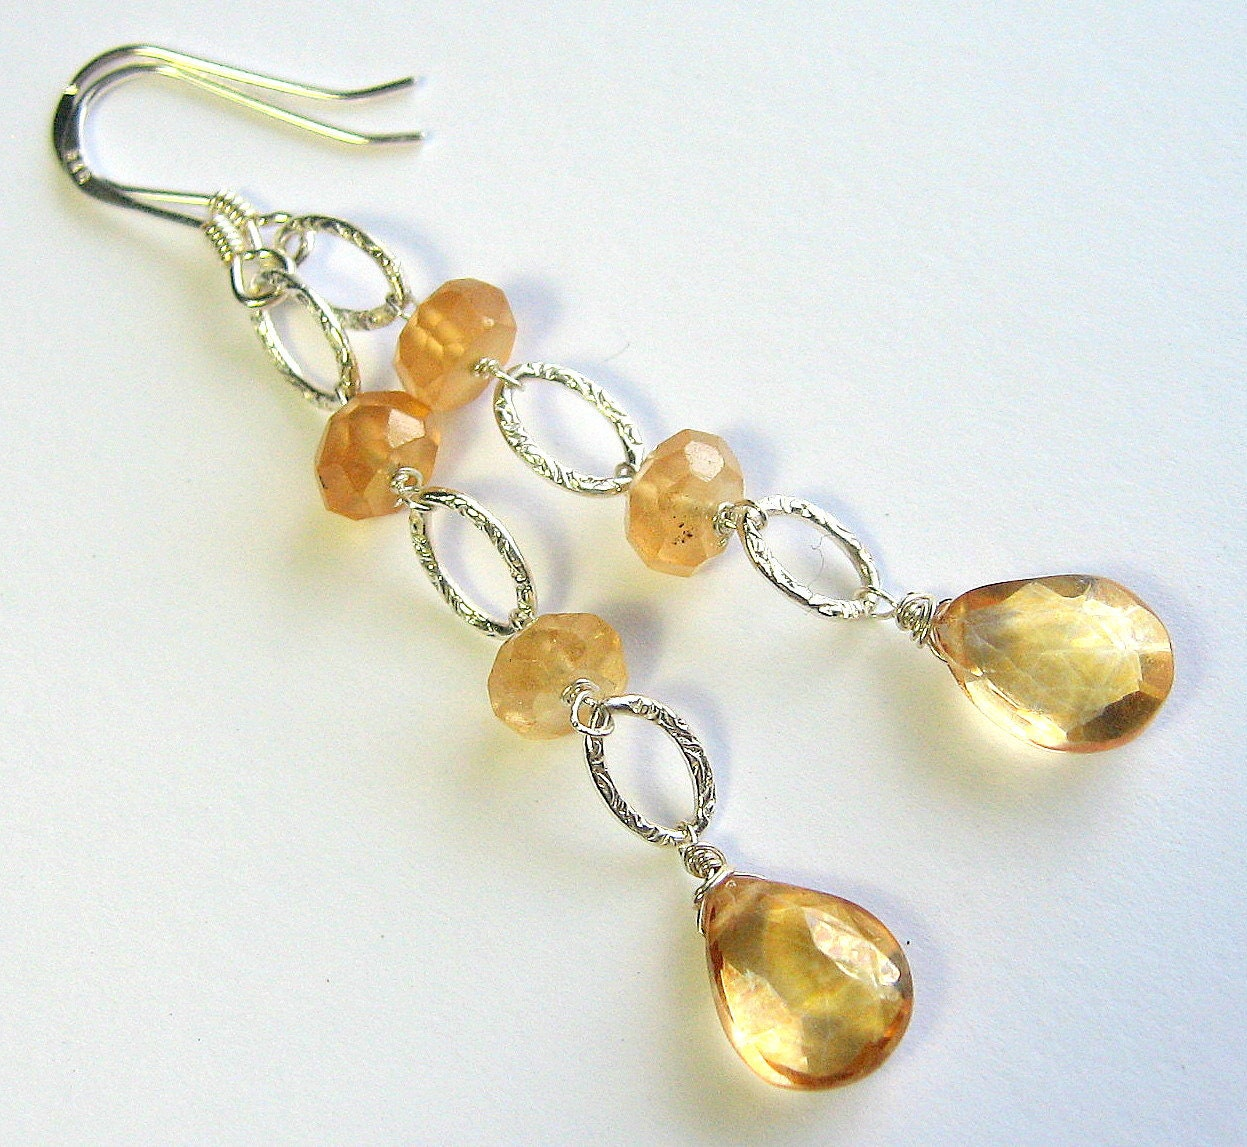 Apricot Gemstone Earrings, Champagne Quartz, Sterling Silver, Garnet